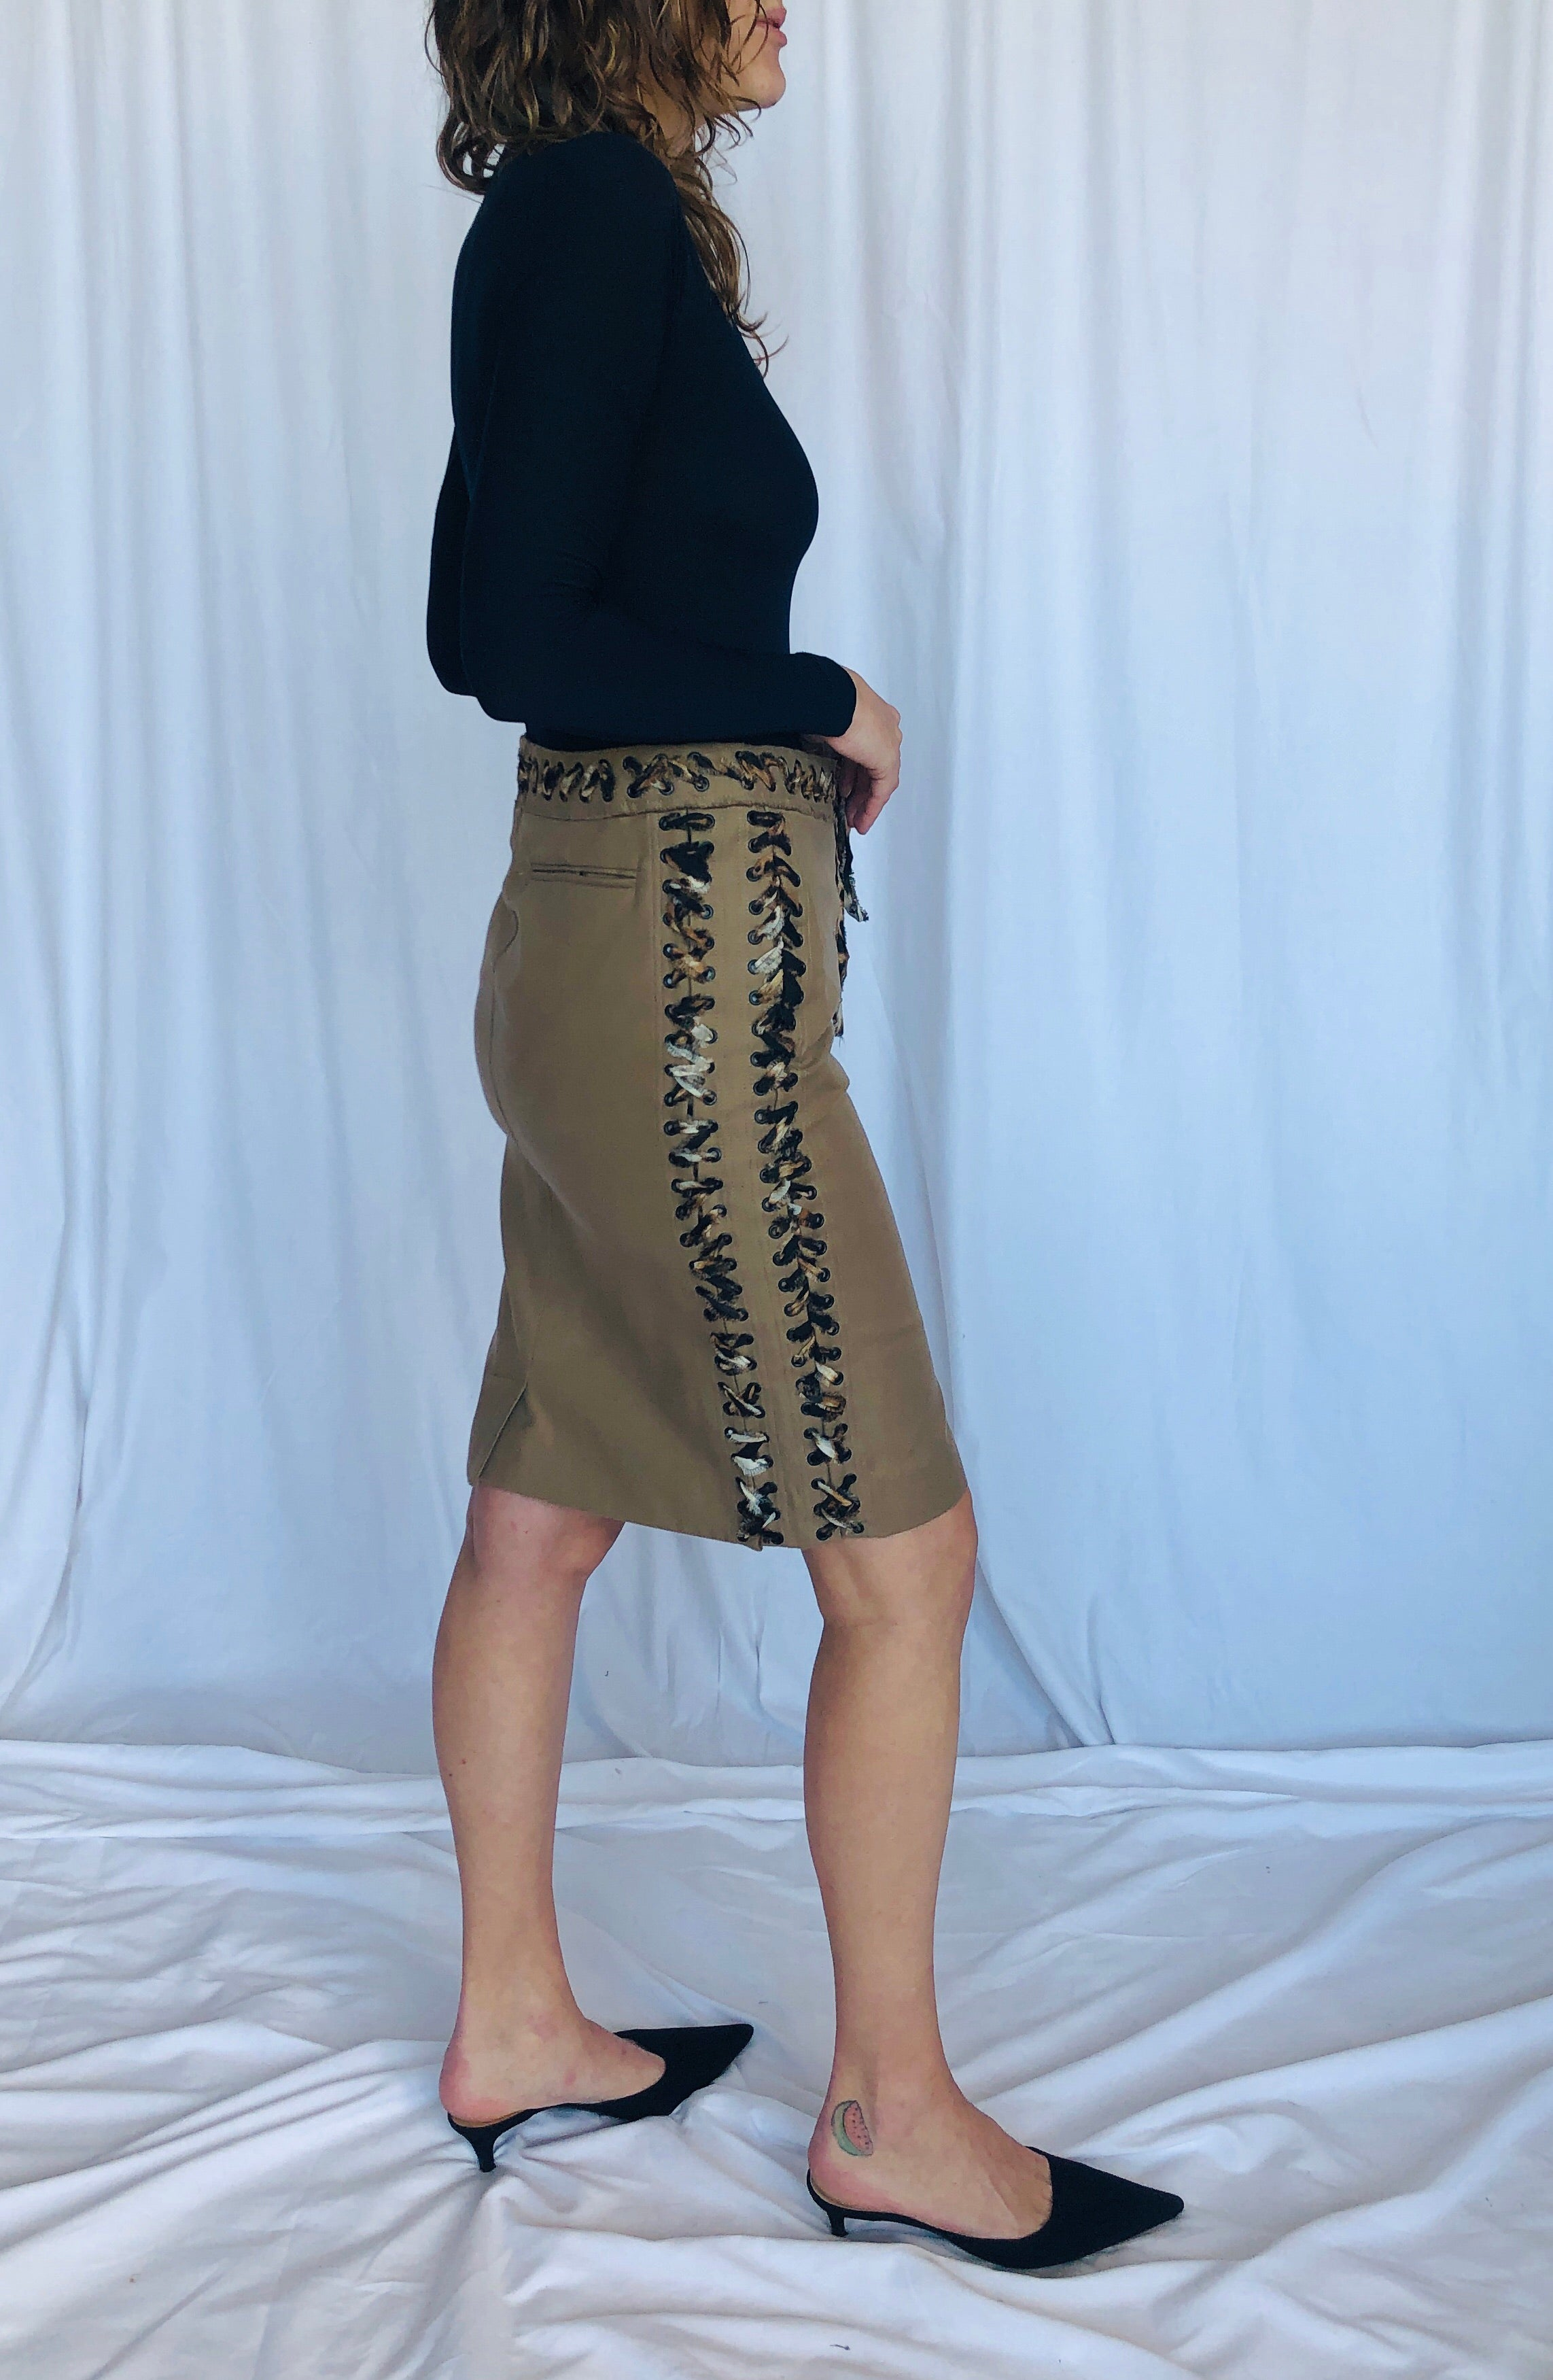 YSL Yves Saint Laurent Vintage Tom Ford Cotton Safari Tie Up Skirt FR36 S